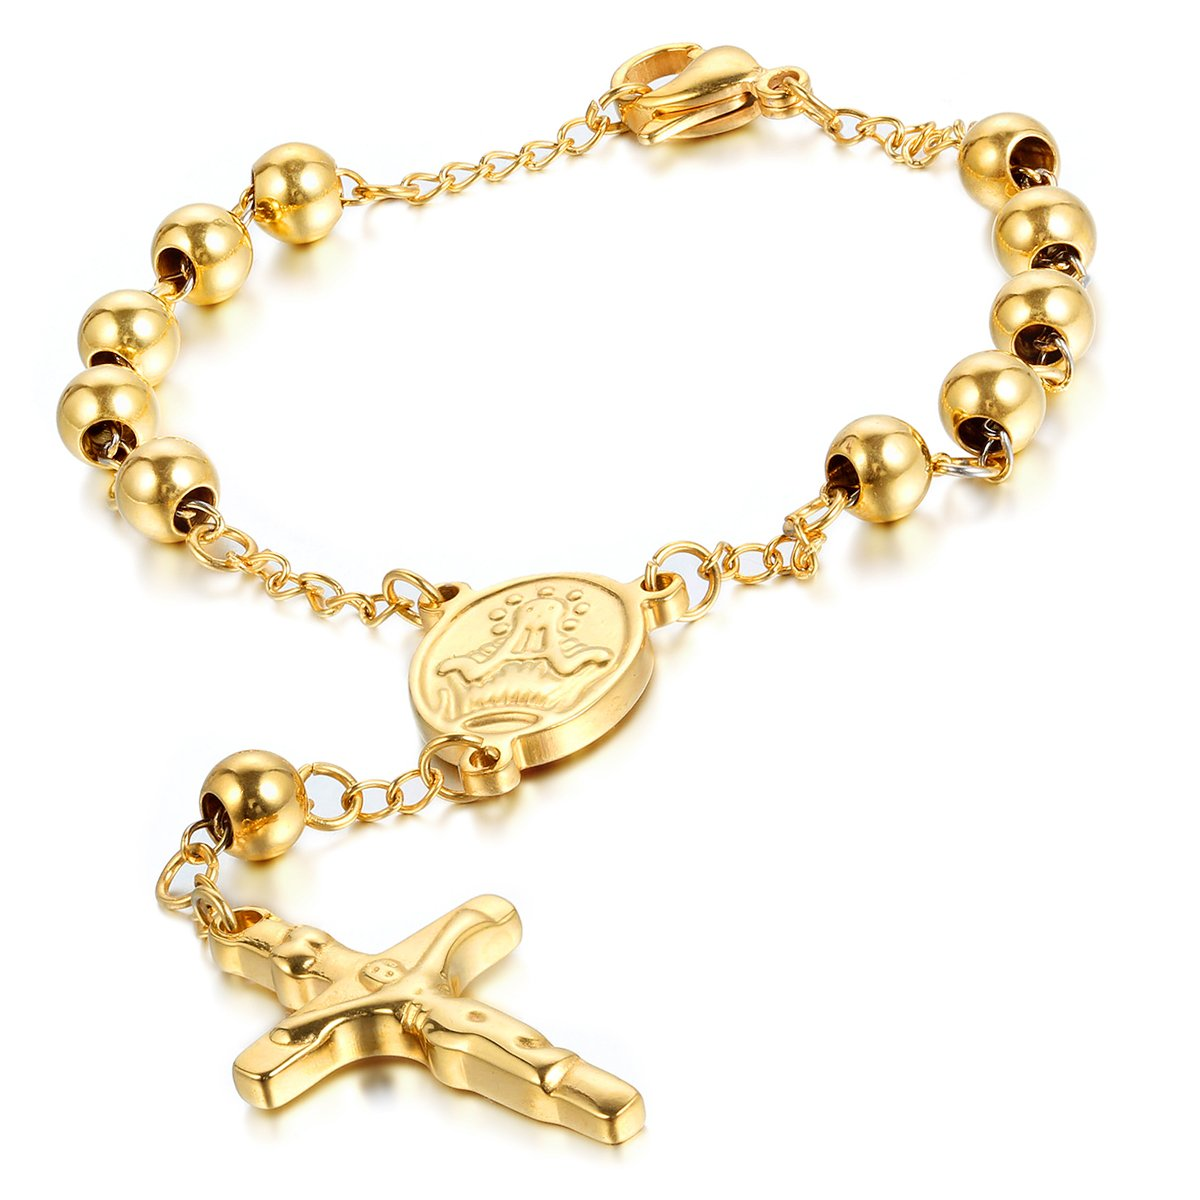 Cupimatch Religious Stainless Steel Beaded Rosary Cross Charm Bracelet for Men Women 8.6 C002069